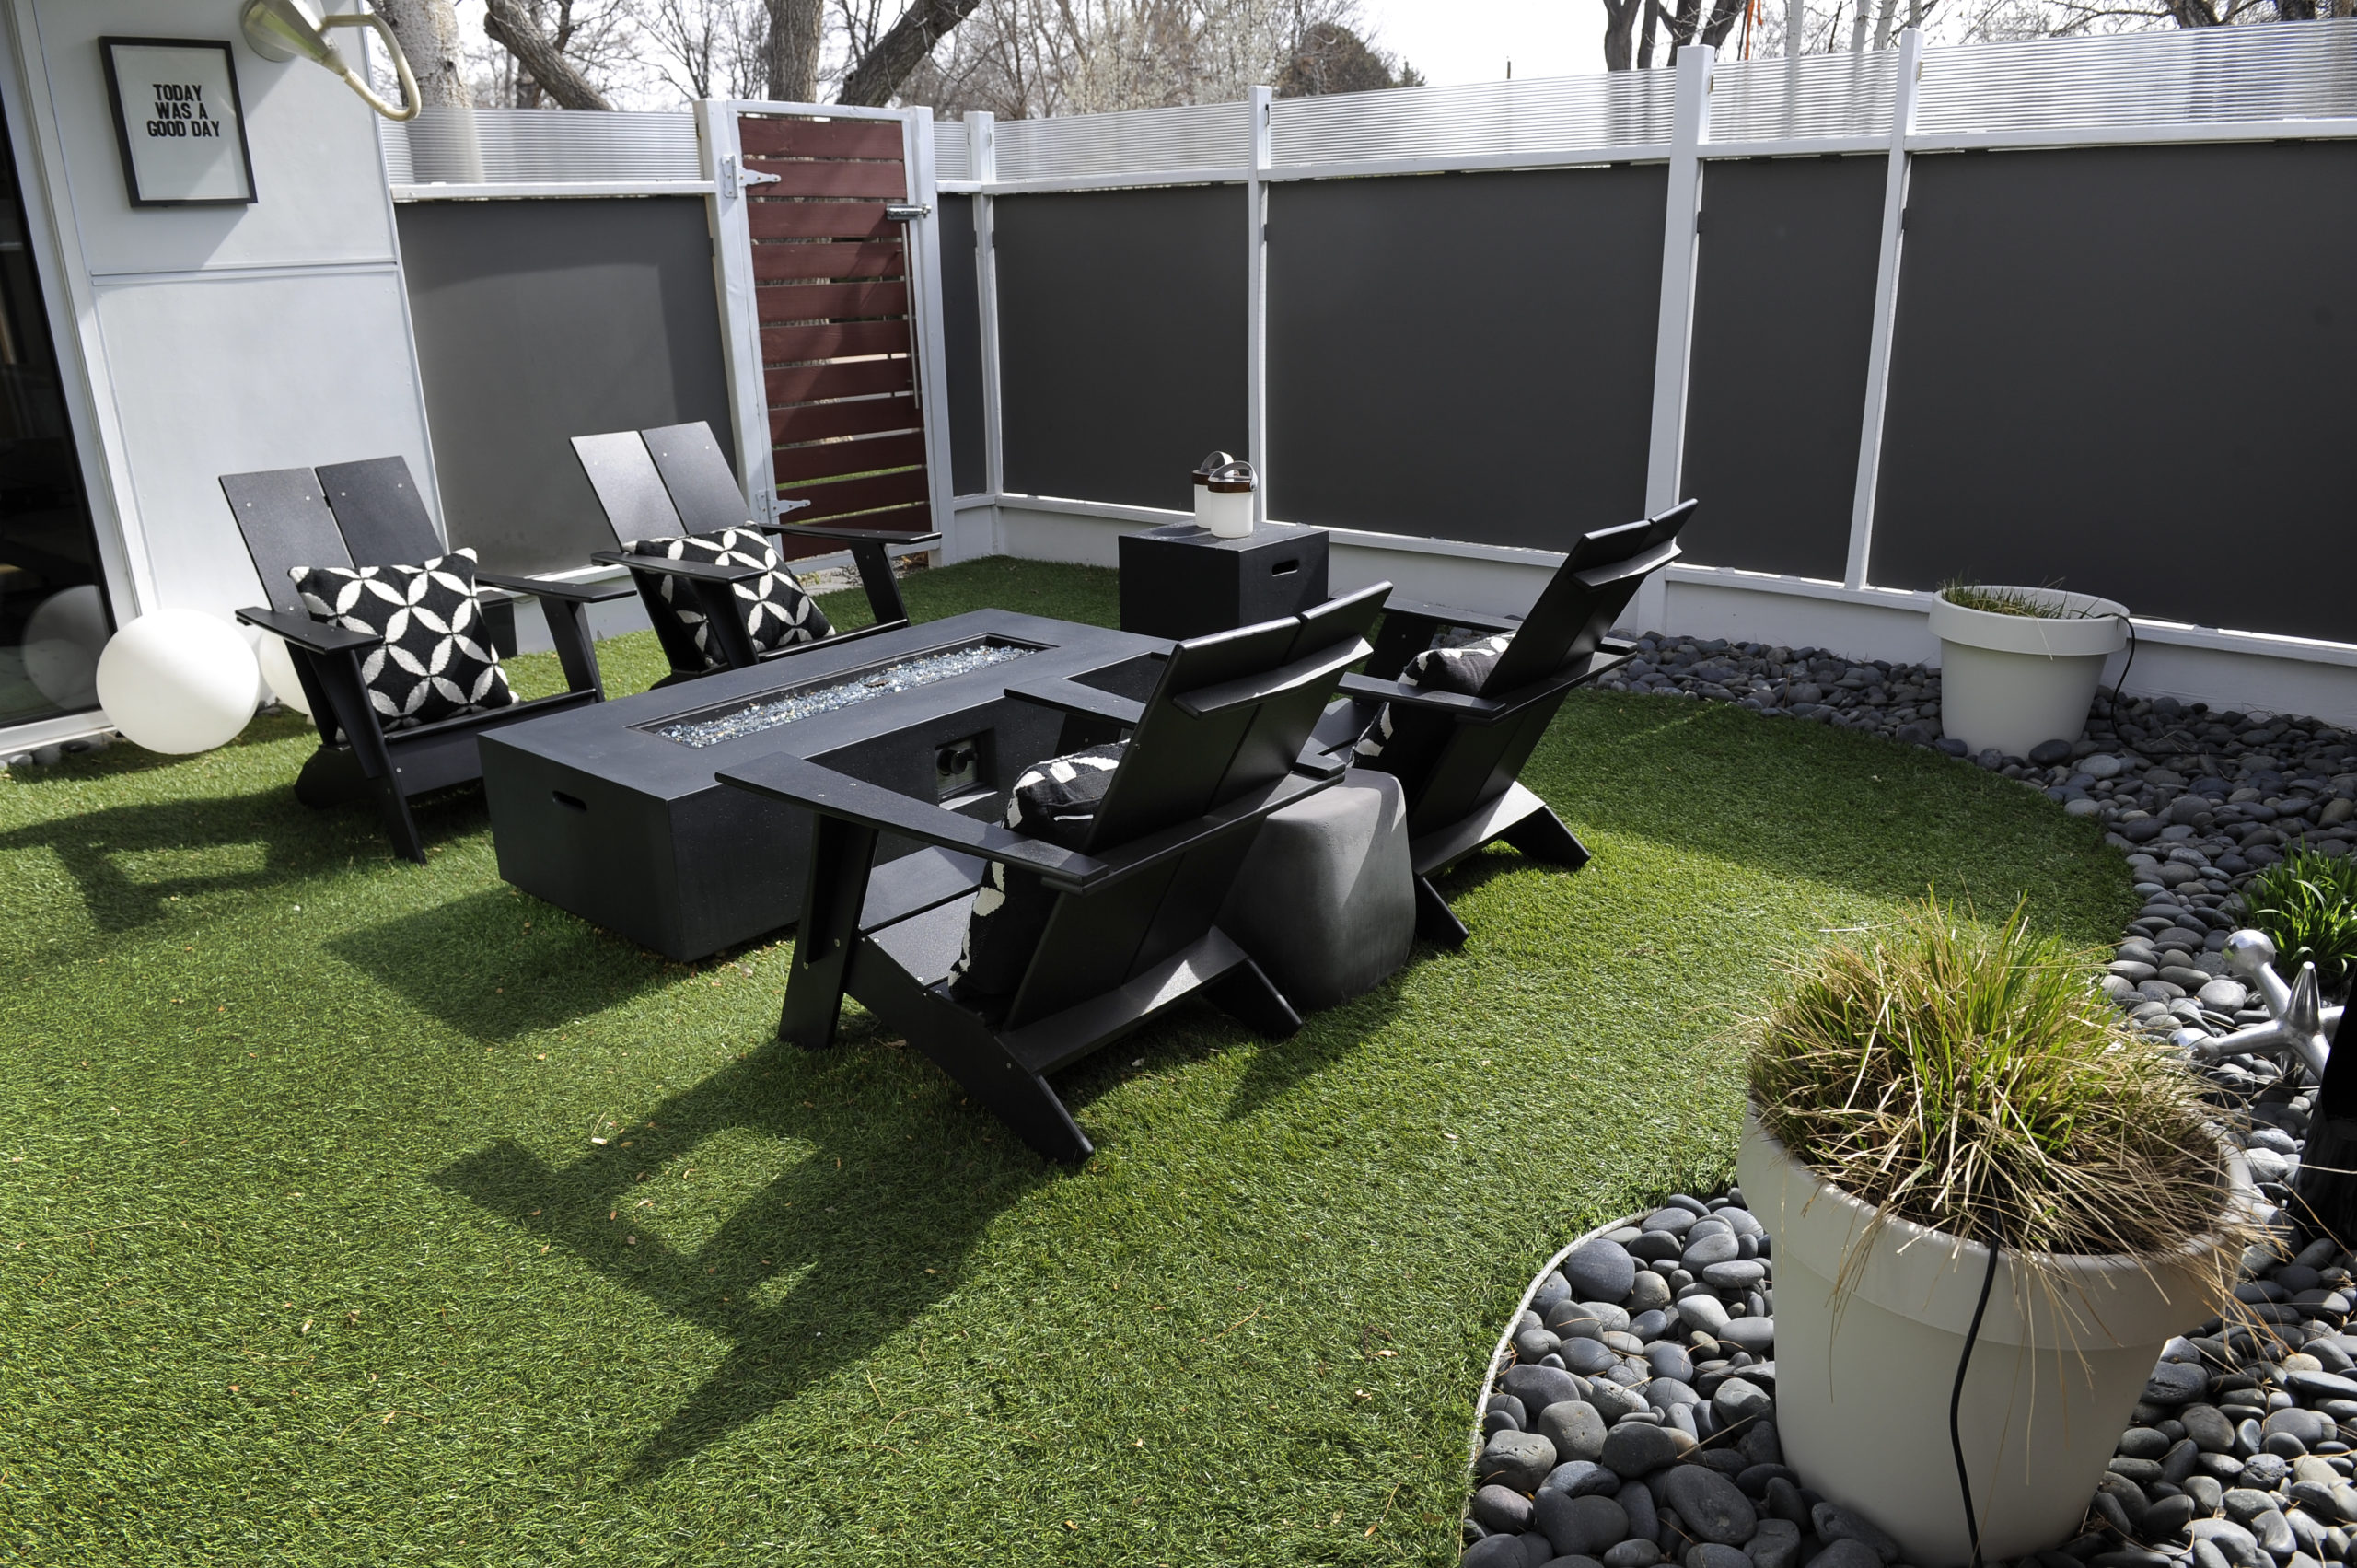 Install Artificial Grass, Install Artificial Grass In Your Yard